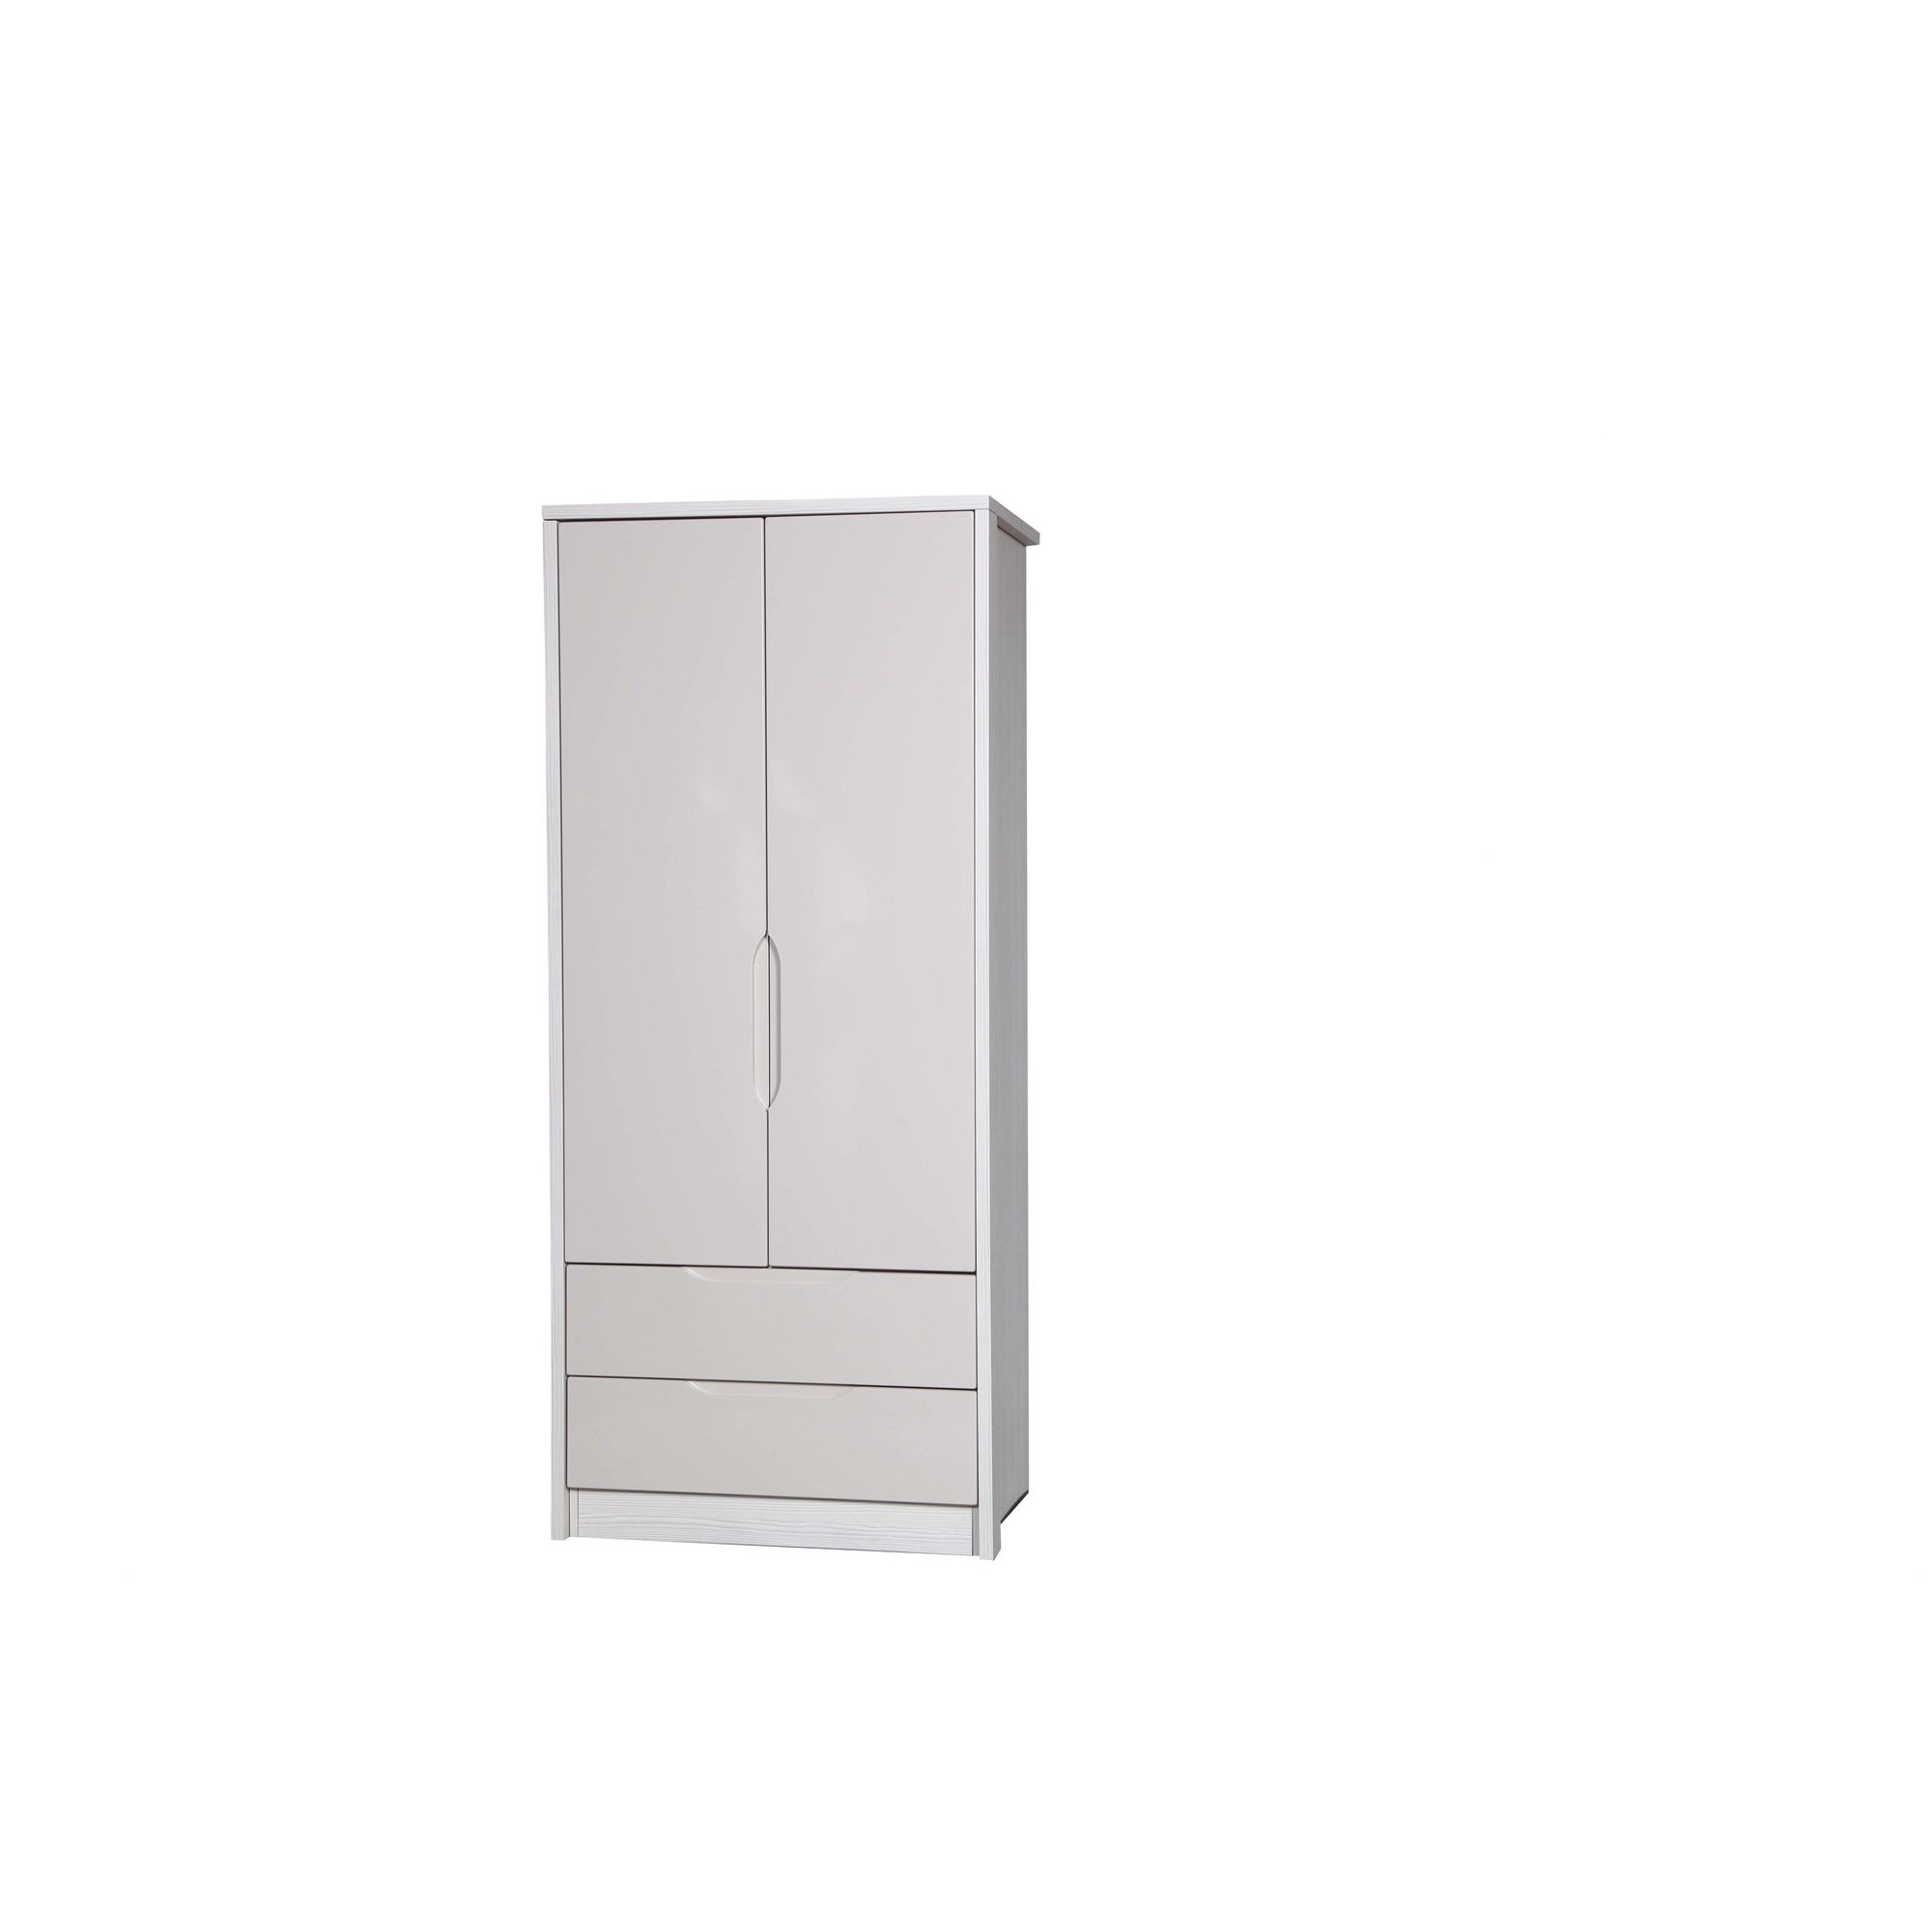 Alto Furniture Avola 2 Drawer Combi Wardrobe - White Avola Carcass With Sand Gloss at Tesco Direct